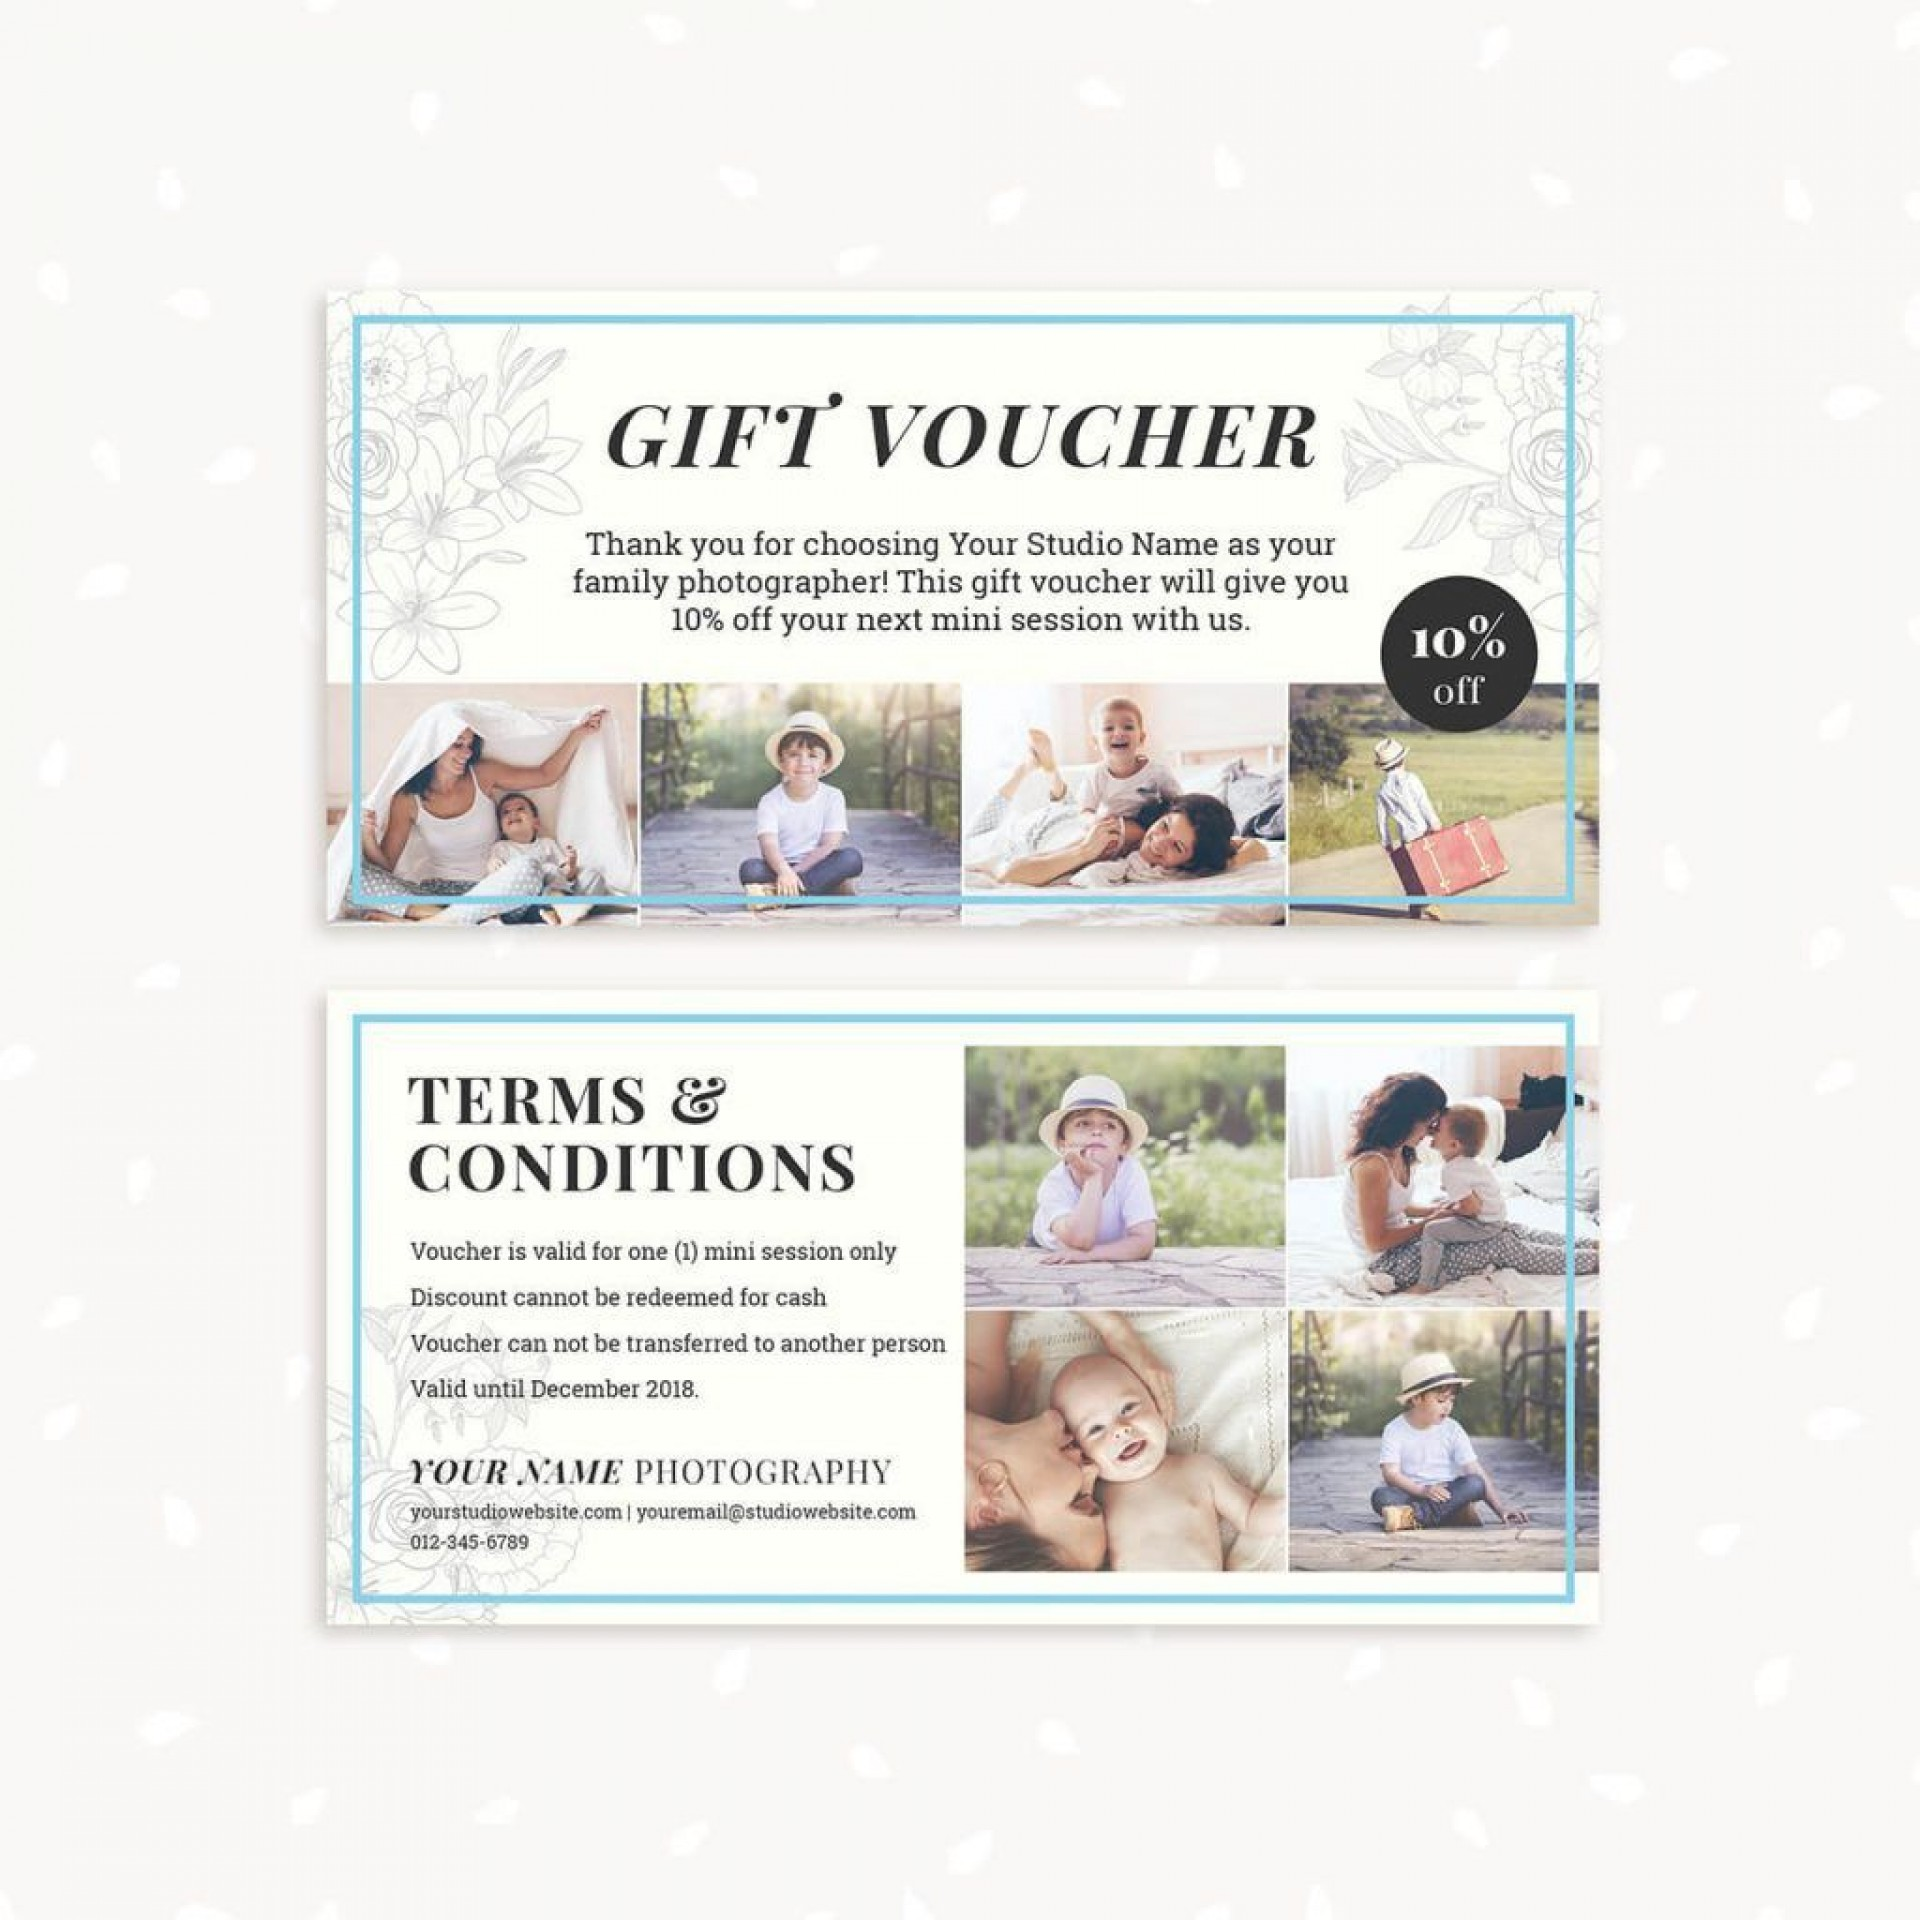 002 Exceptional Photography Session Gift Certificate Template Concept  Photo Free Photoshoot1920